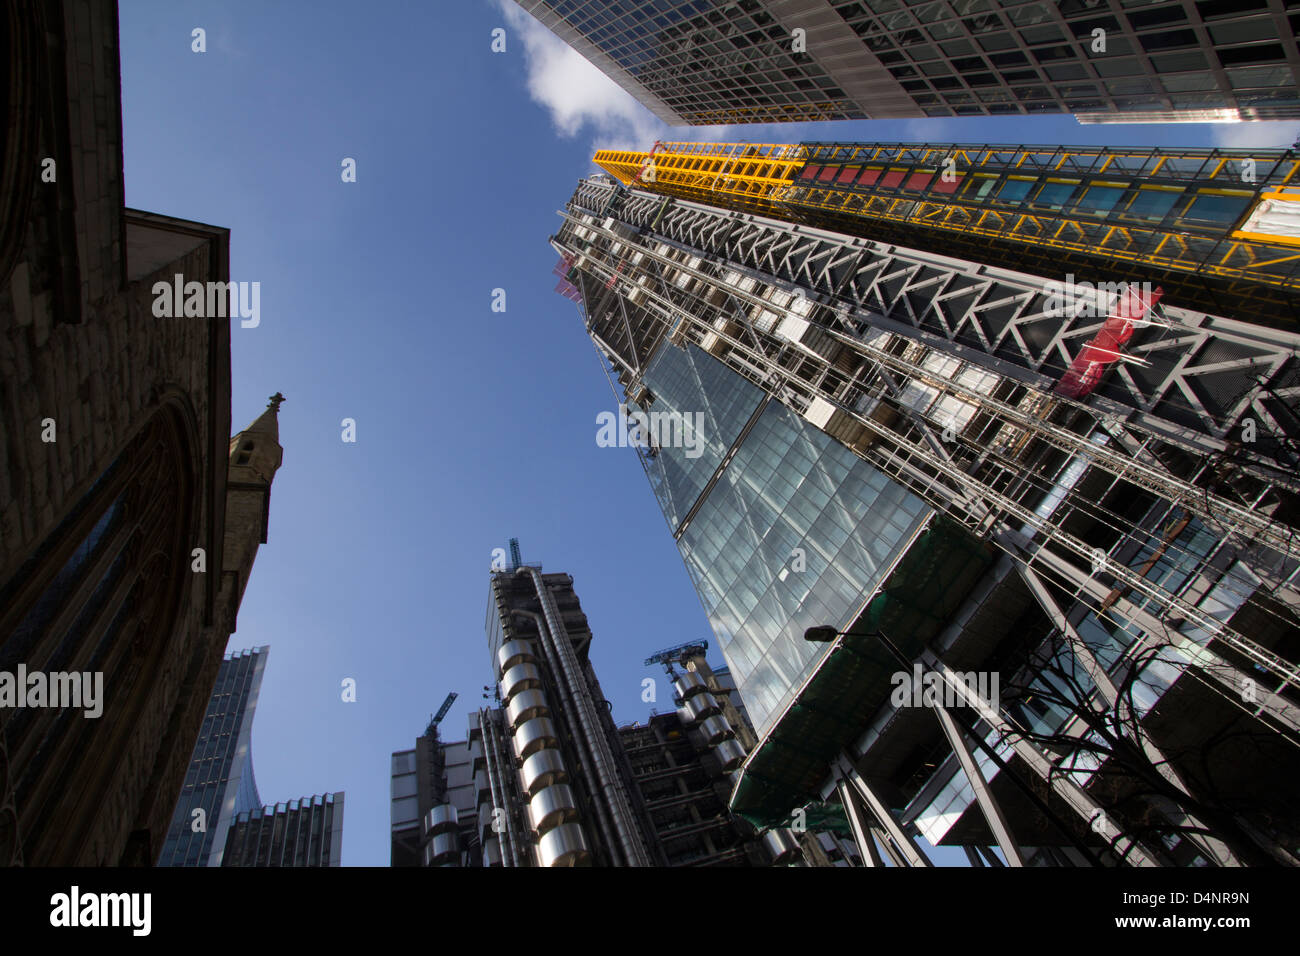 The Leadenhall building 122 Leadenhall Street The cheesegrater (with yellow scaffolding) which is to become the - Stock Image